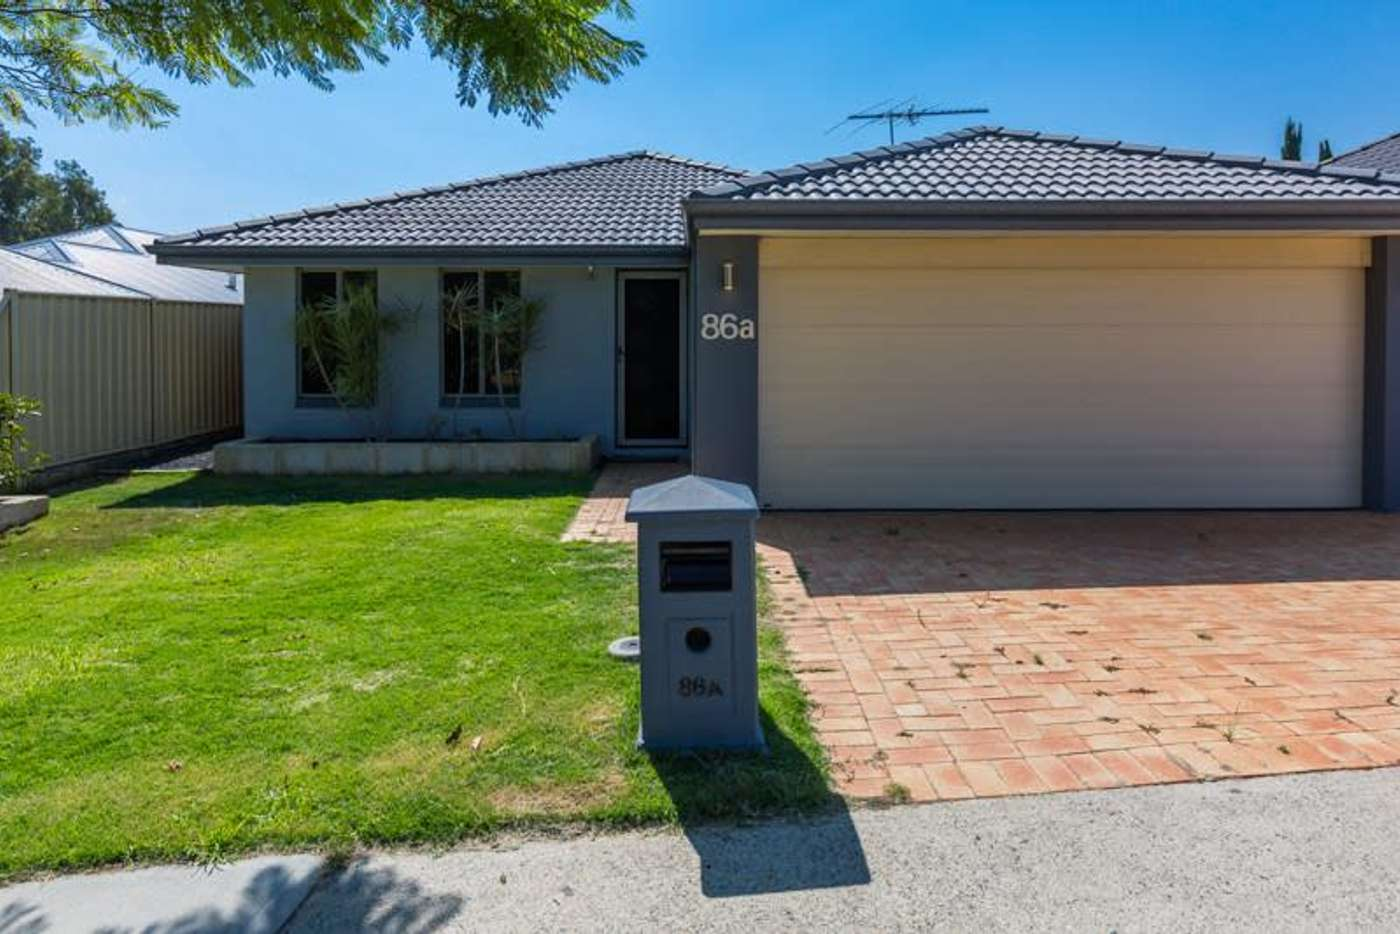 Main view of Homely house listing, 86a Garling Street, Willagee WA 6156